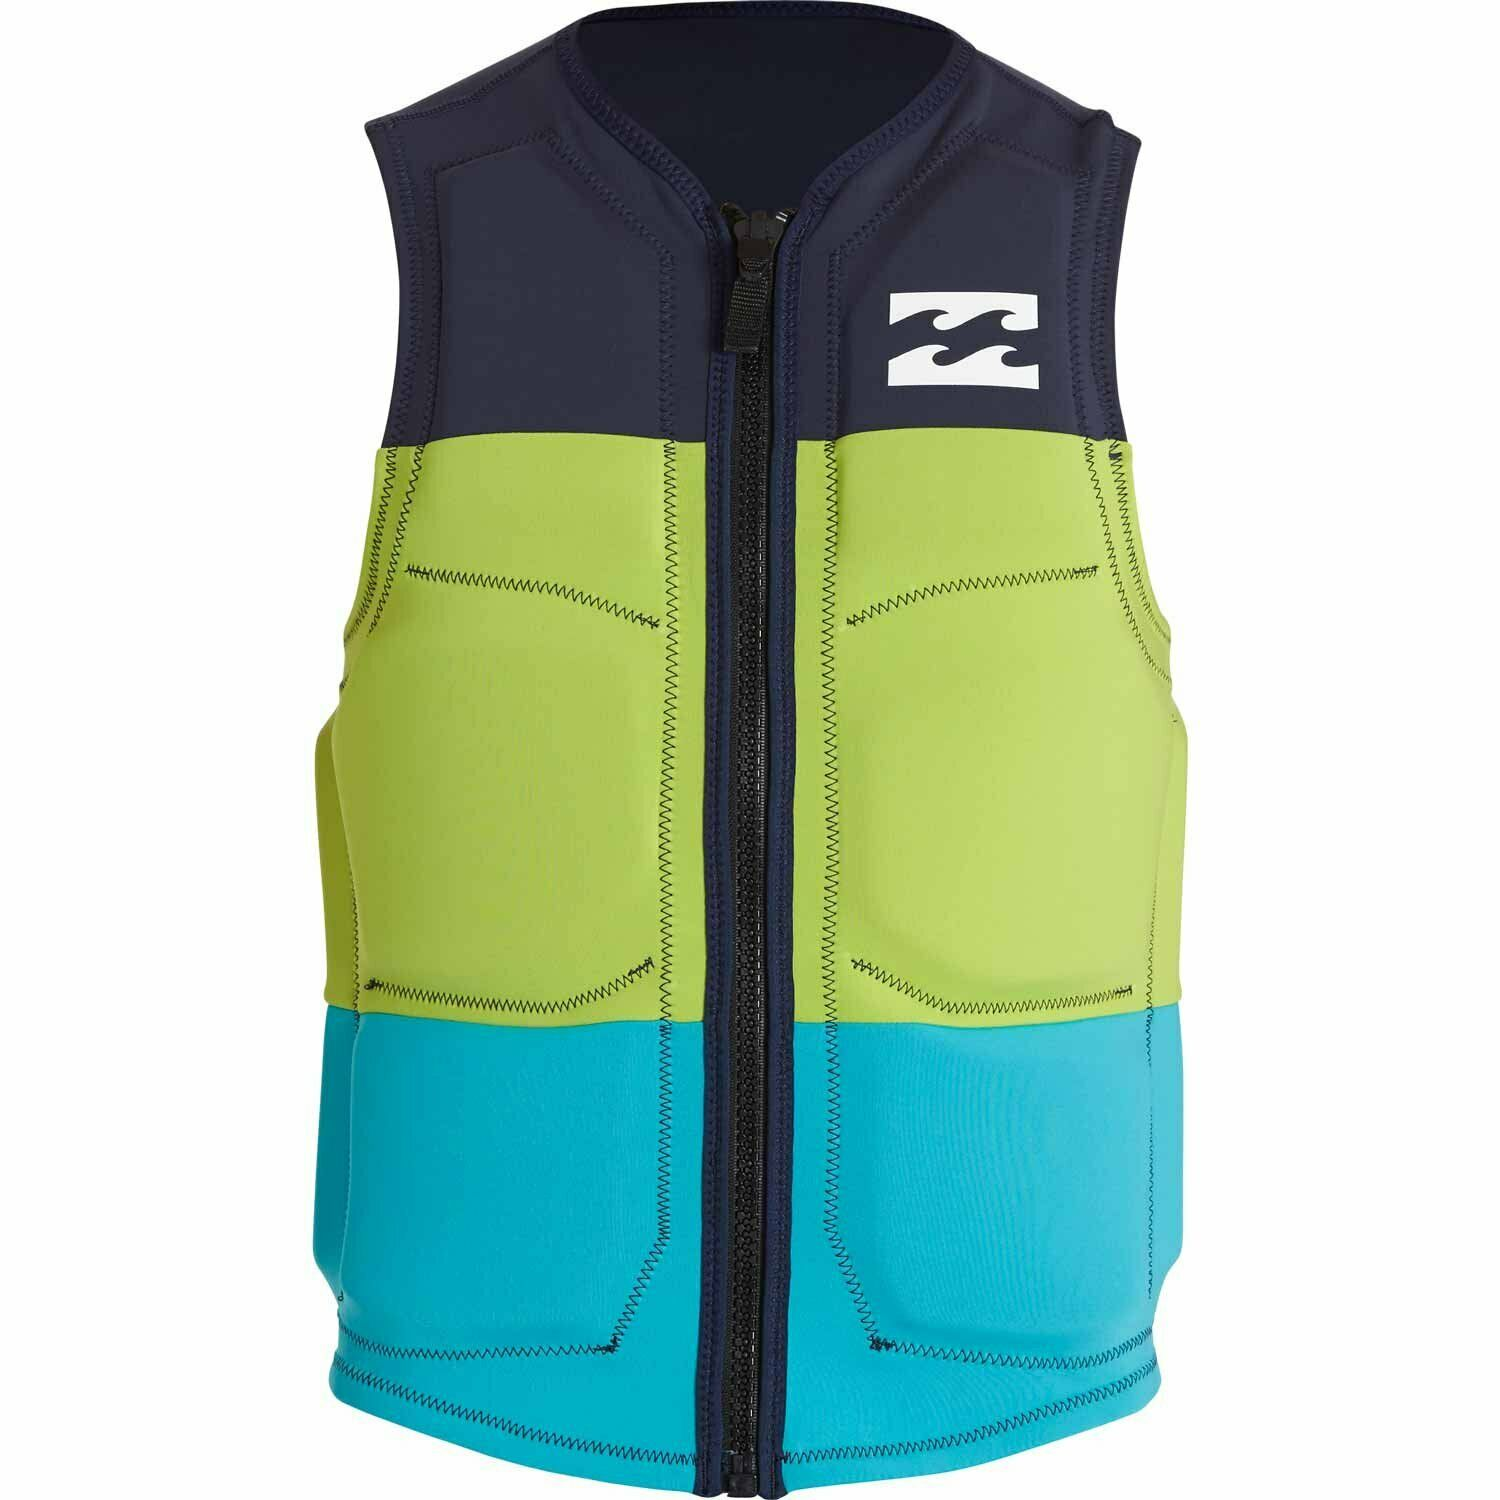 BILLABONG TRI BONG COMPETITION LIFE VEST PFD WAKEBOARDING & WATERSKIING S M L XL